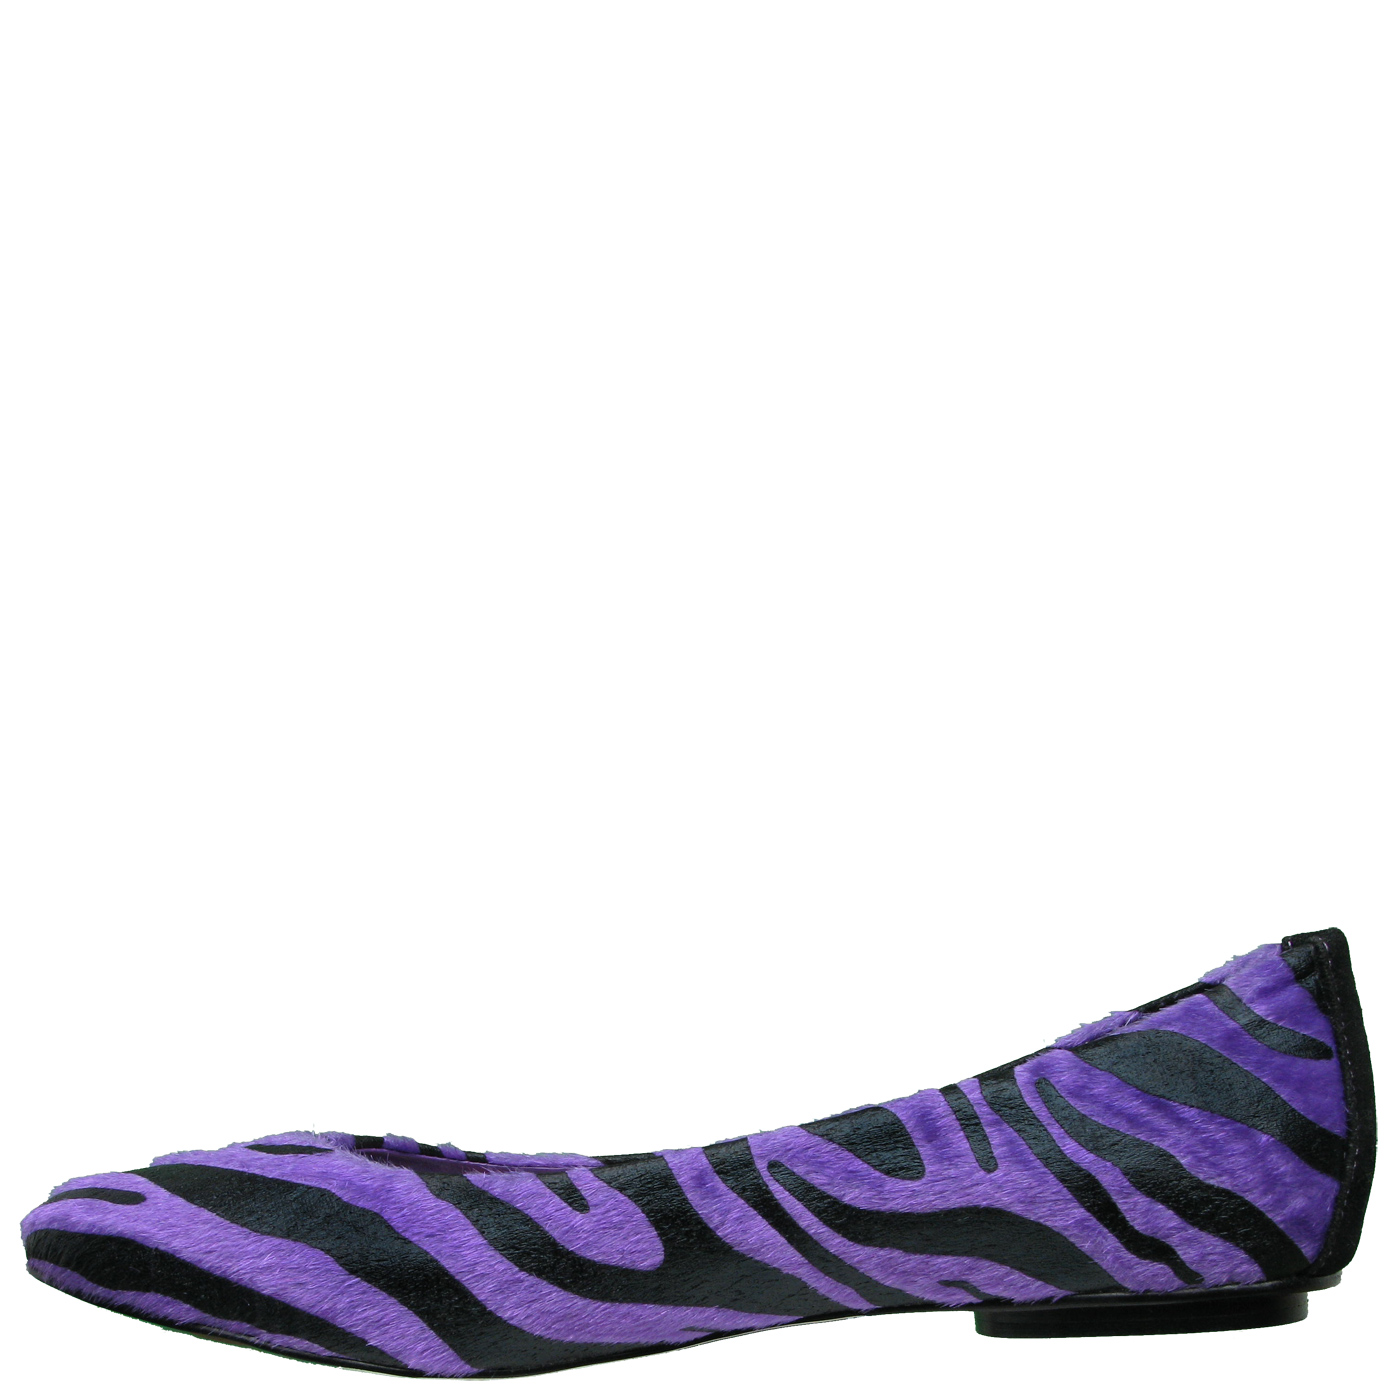 Ed Hardy Downtown Flat Shoe for Women - Purple